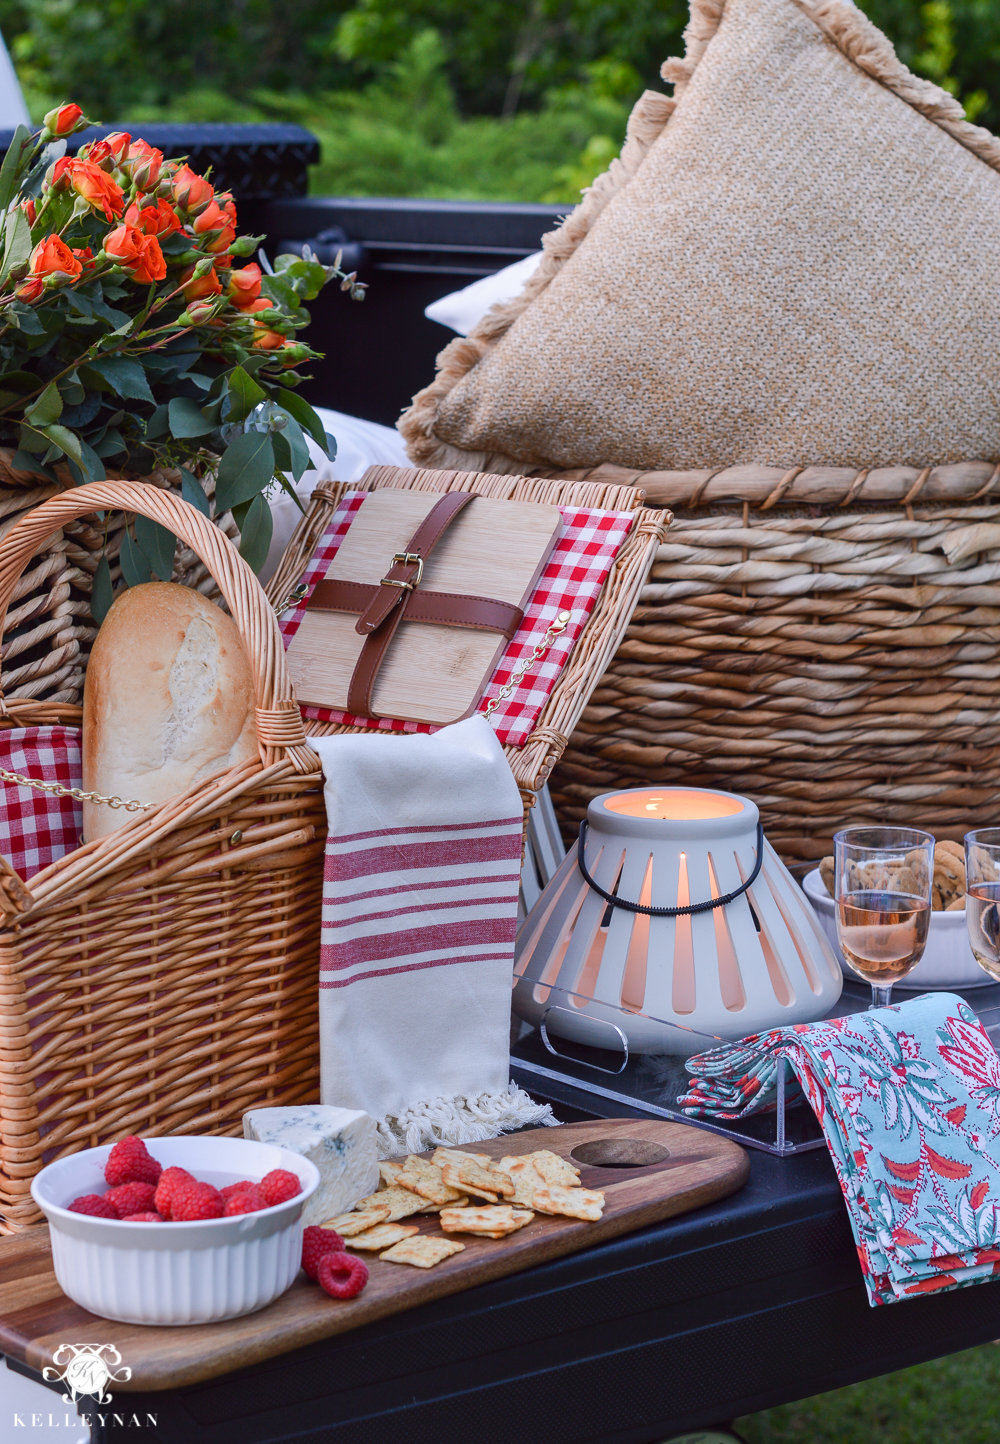 Picnic and Tailgate Ideas and Setup- fancy tailgate ideas